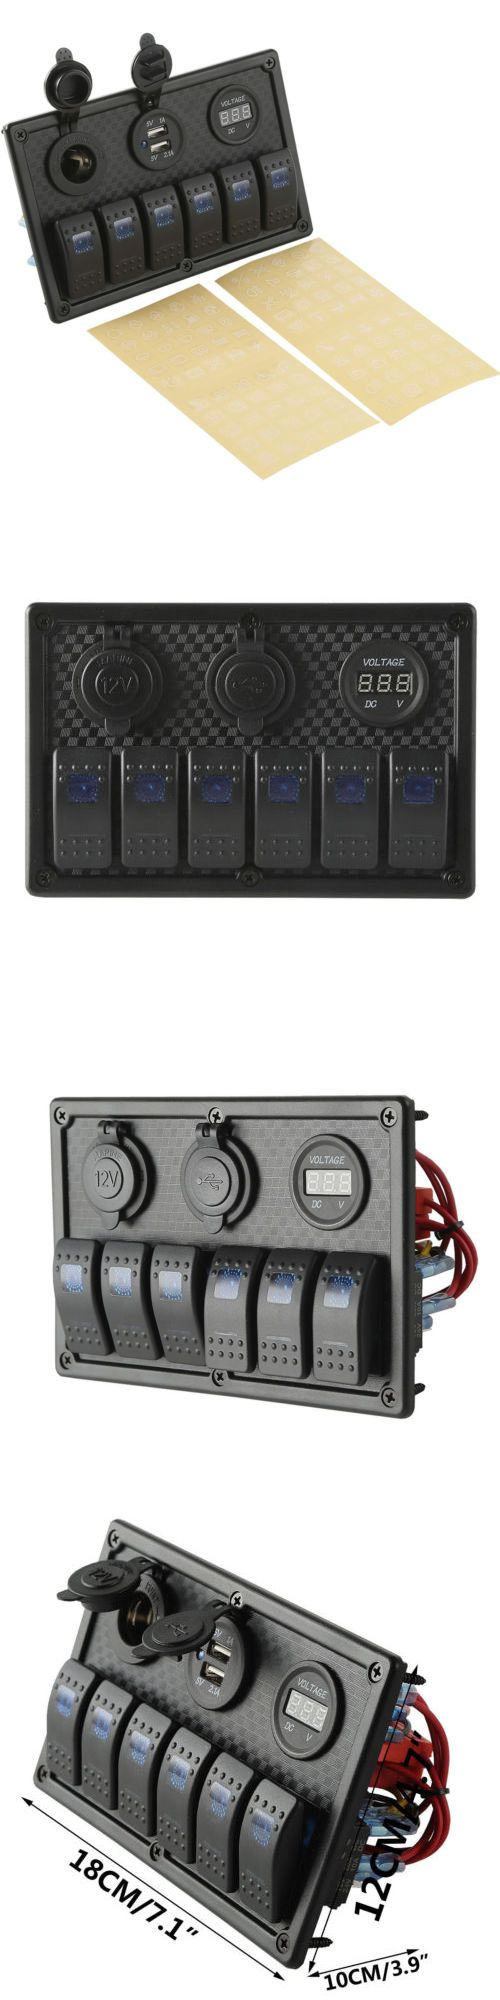 boat parts: 6 Gang Marine Rv Led Rocker Switch Panel Dual Usb Voltmeter Power Supply Socket -> BUY IT NOW ONLY: $45.99 on eBay!